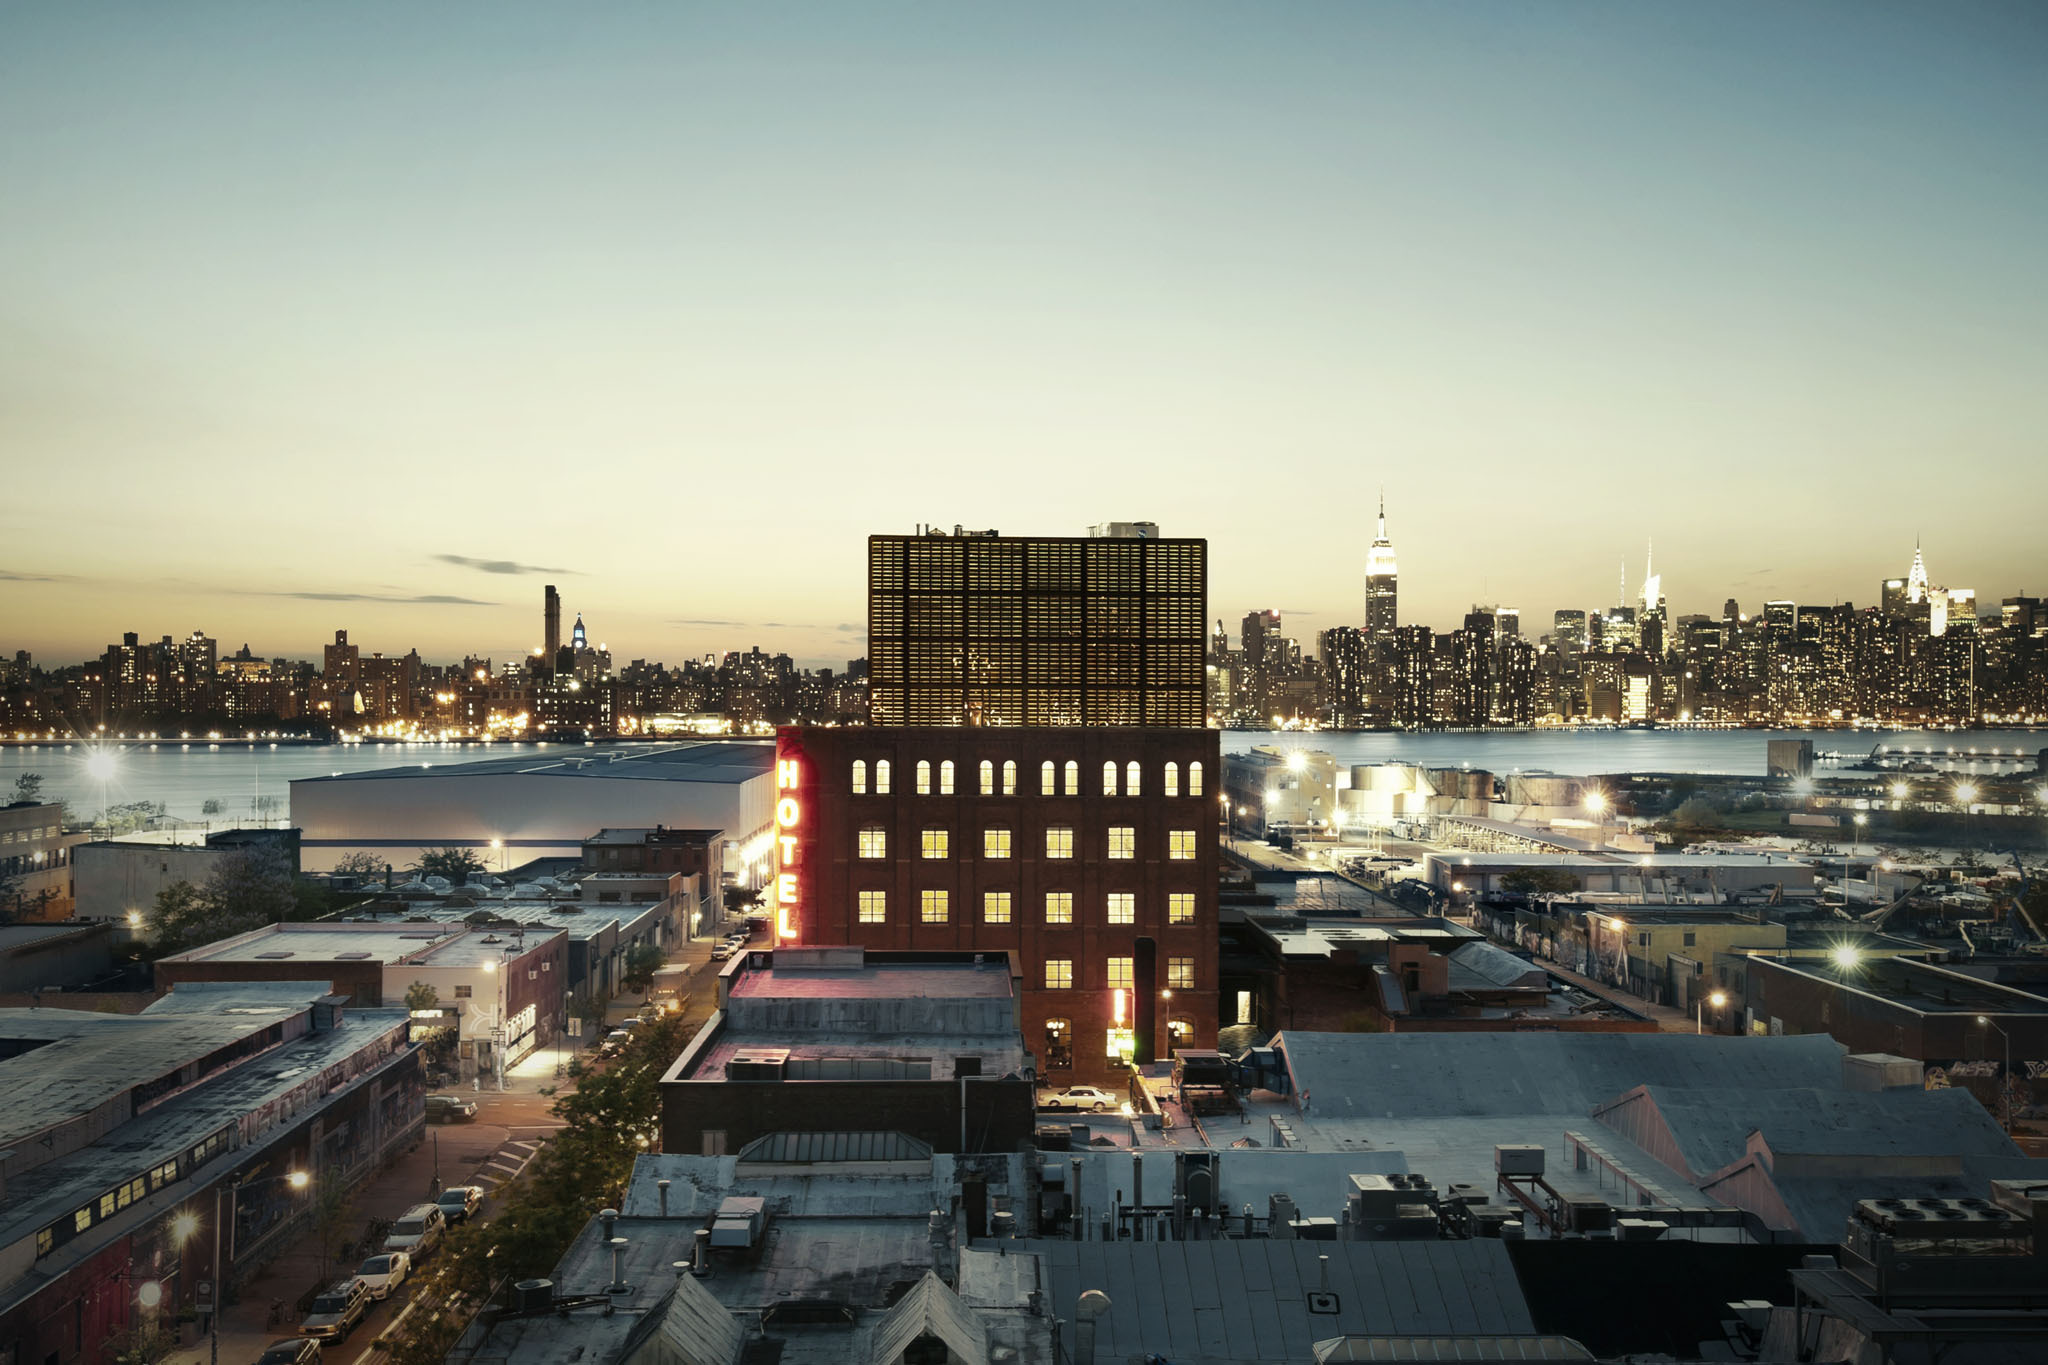 Williamsburg, Brooklyn